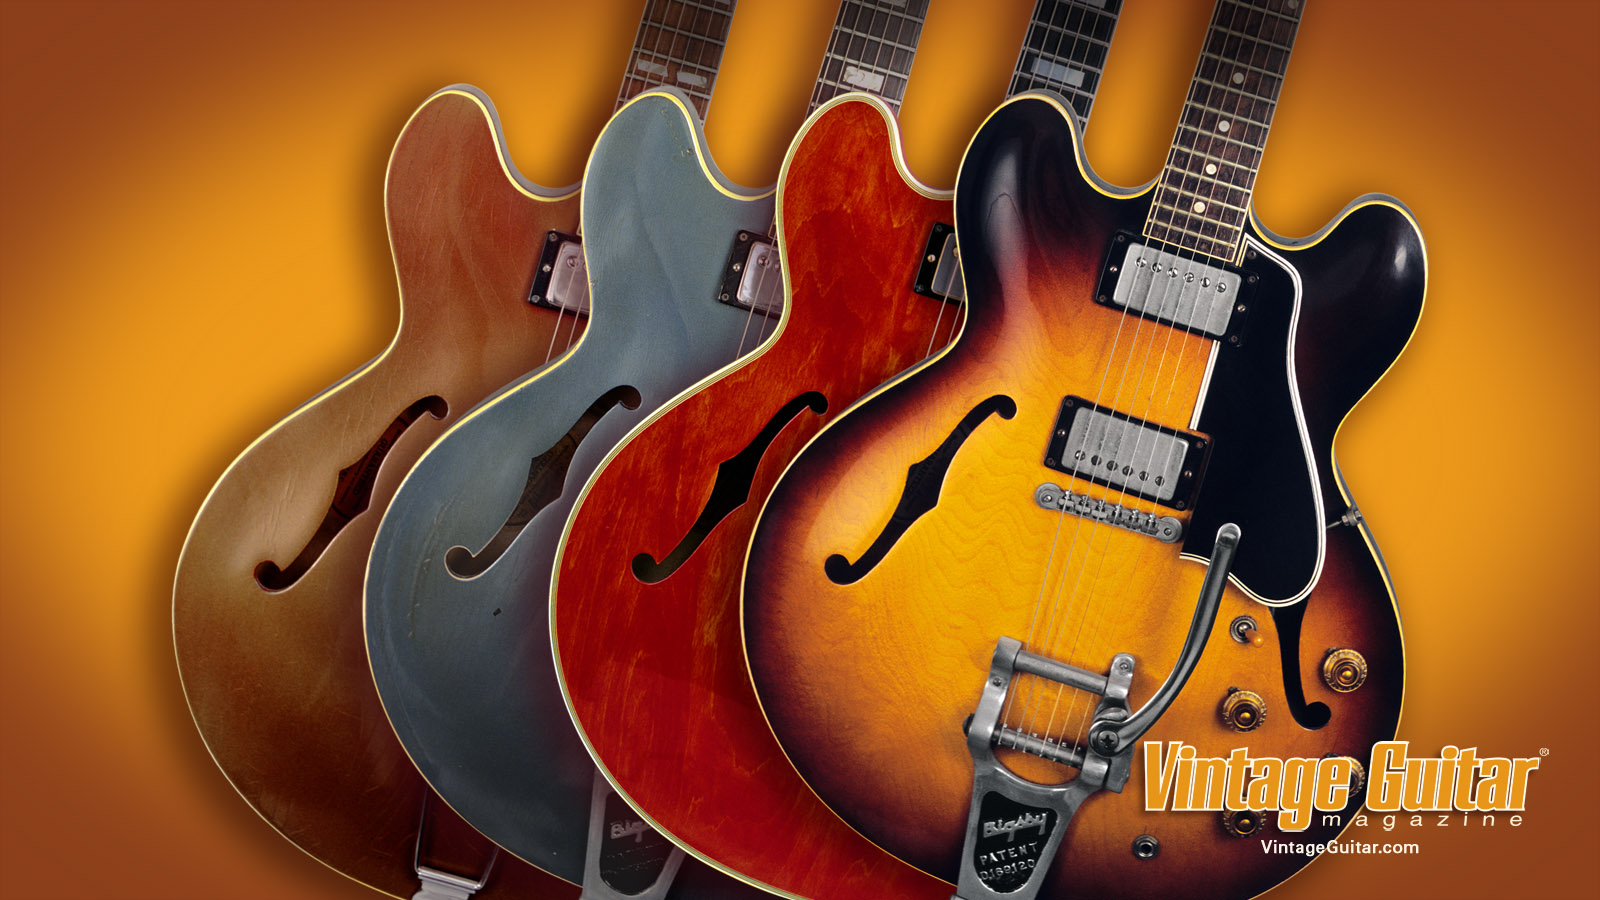 Backgrounds | Vintage Guitar® magazine